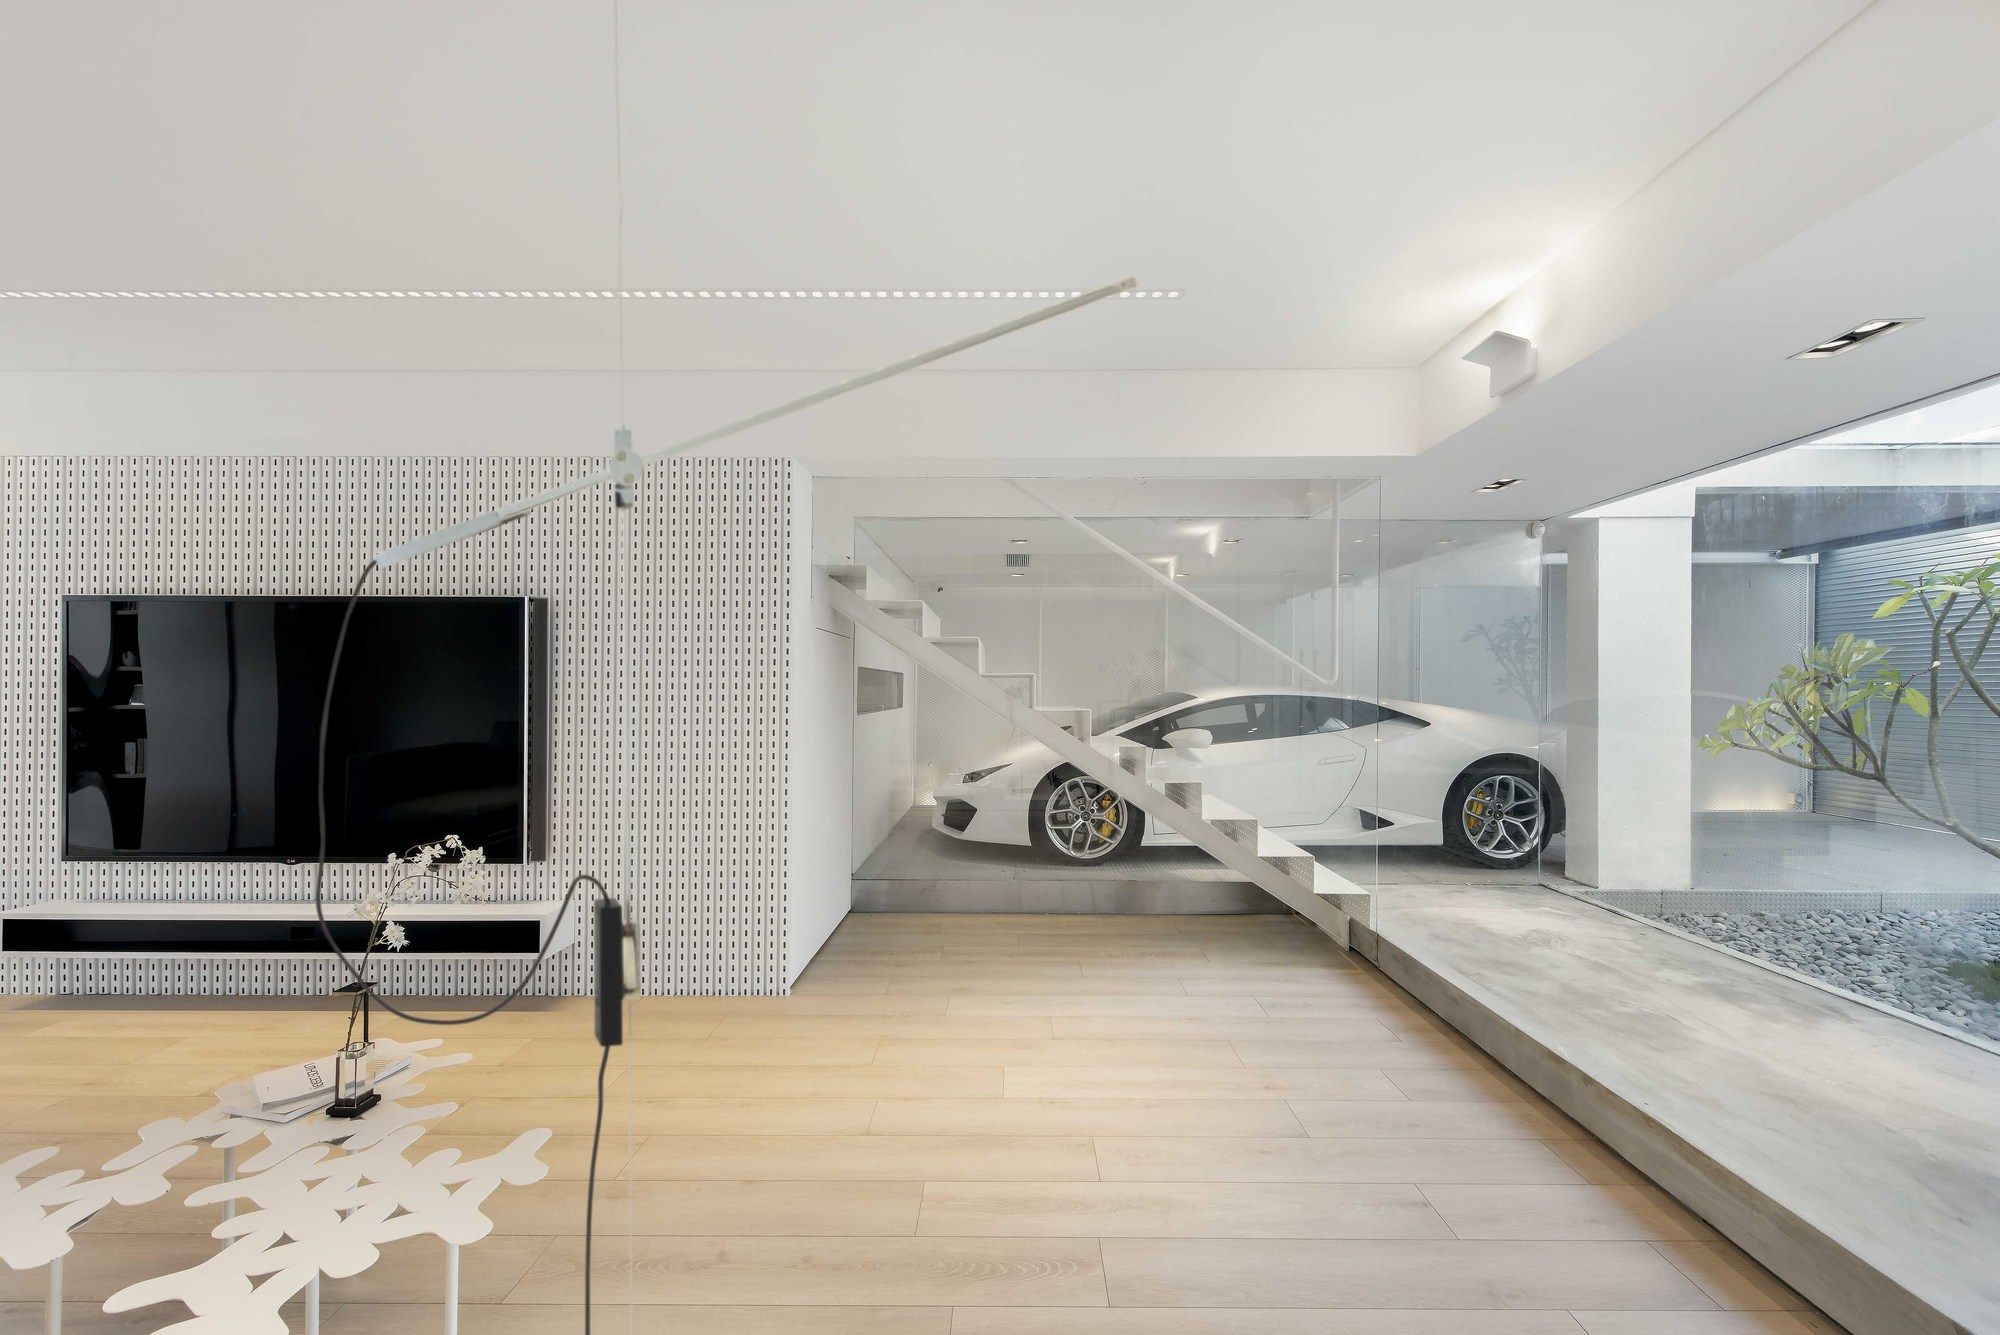 Incroyable Courtesy Of Millimeter Interior Design